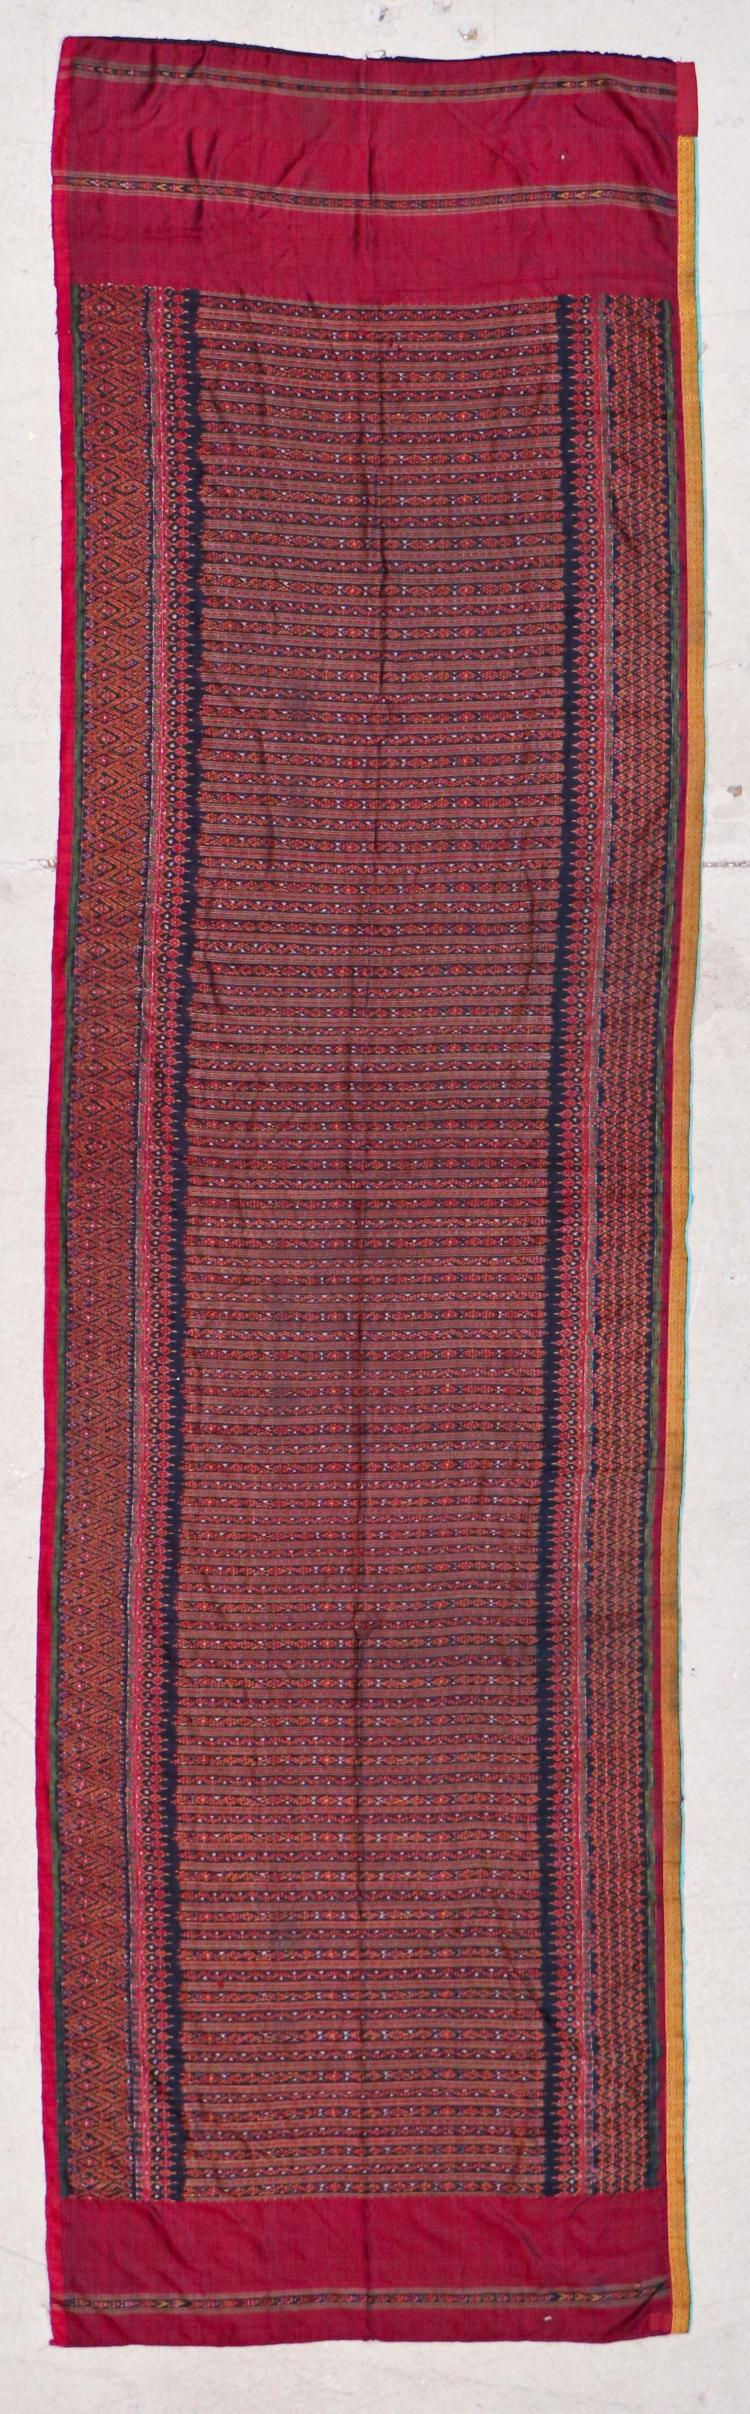 Cambodian Silk Ikat, Early 20th C